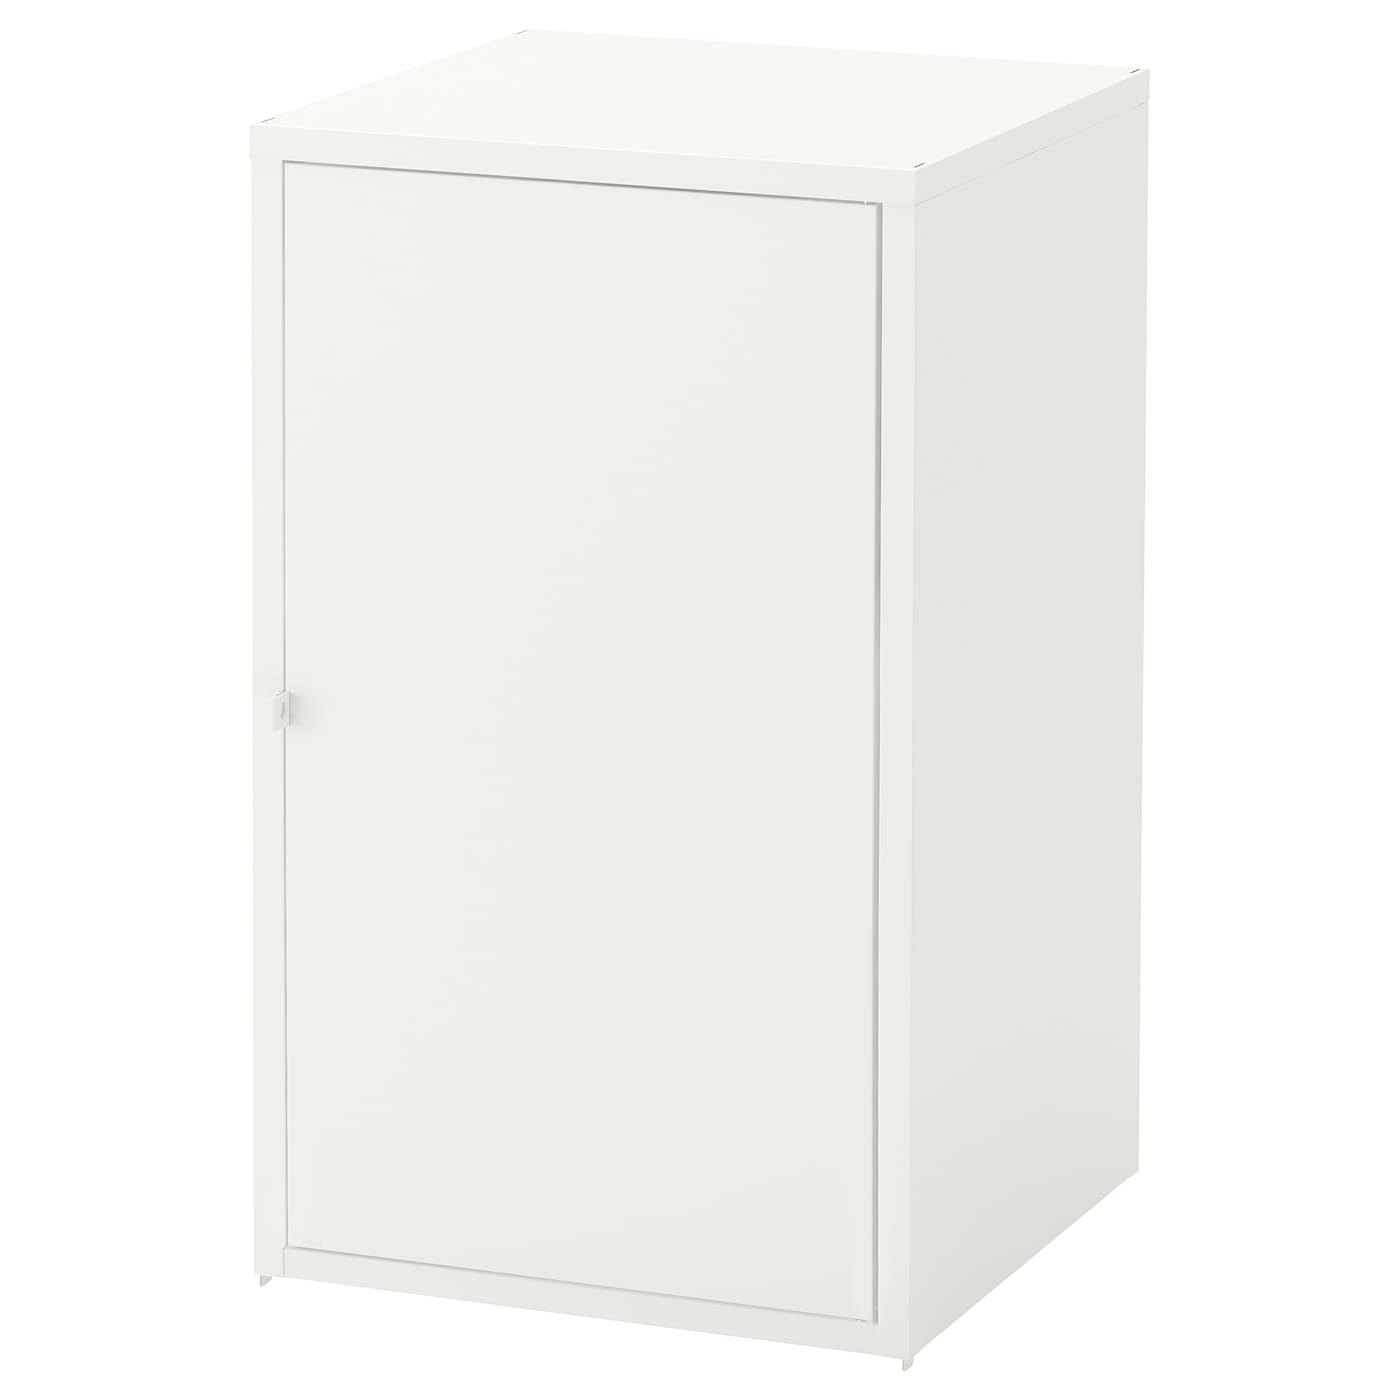 IKEA HÄLLAN cabinet 10 year guarantee. Read about the terms in the guarantee brochure.